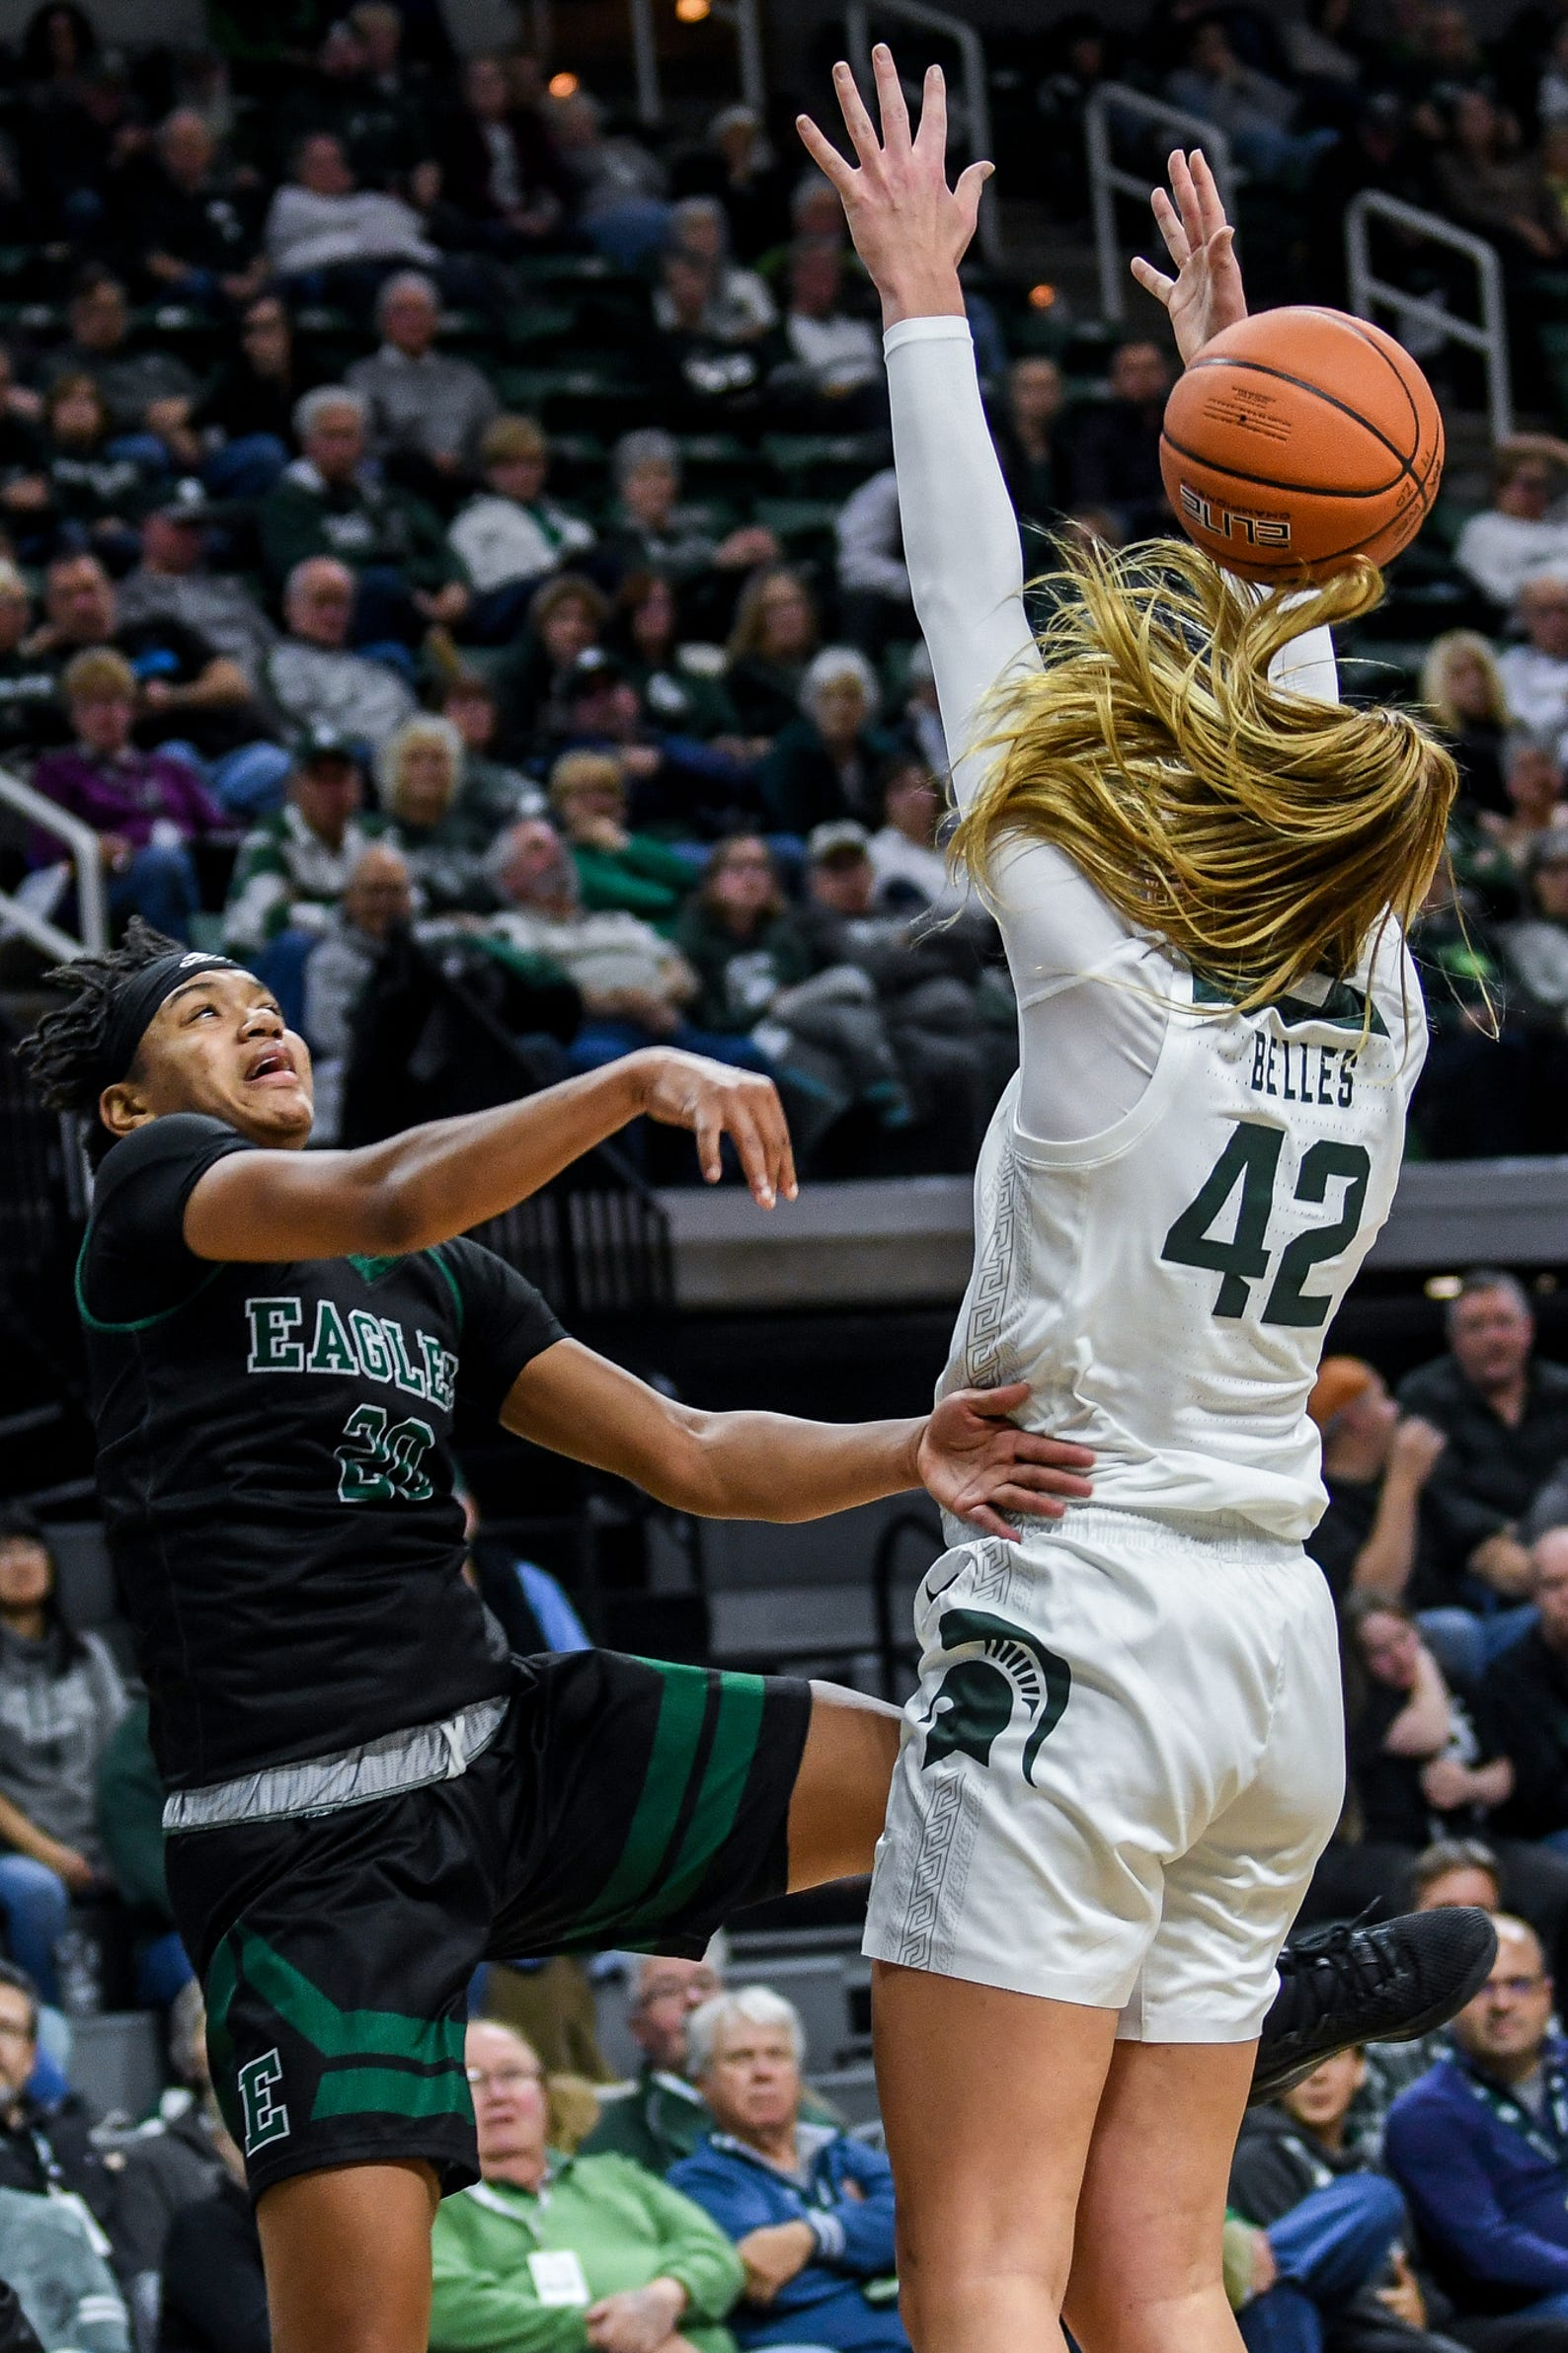 Michigan State's Kayla Belles, right, tips a pass made by Eastern Michigan's Corrione Cardwell during the  second quarter on Tuesday, Nov. 5, 2019, at the Breslin Center in East Lansing.